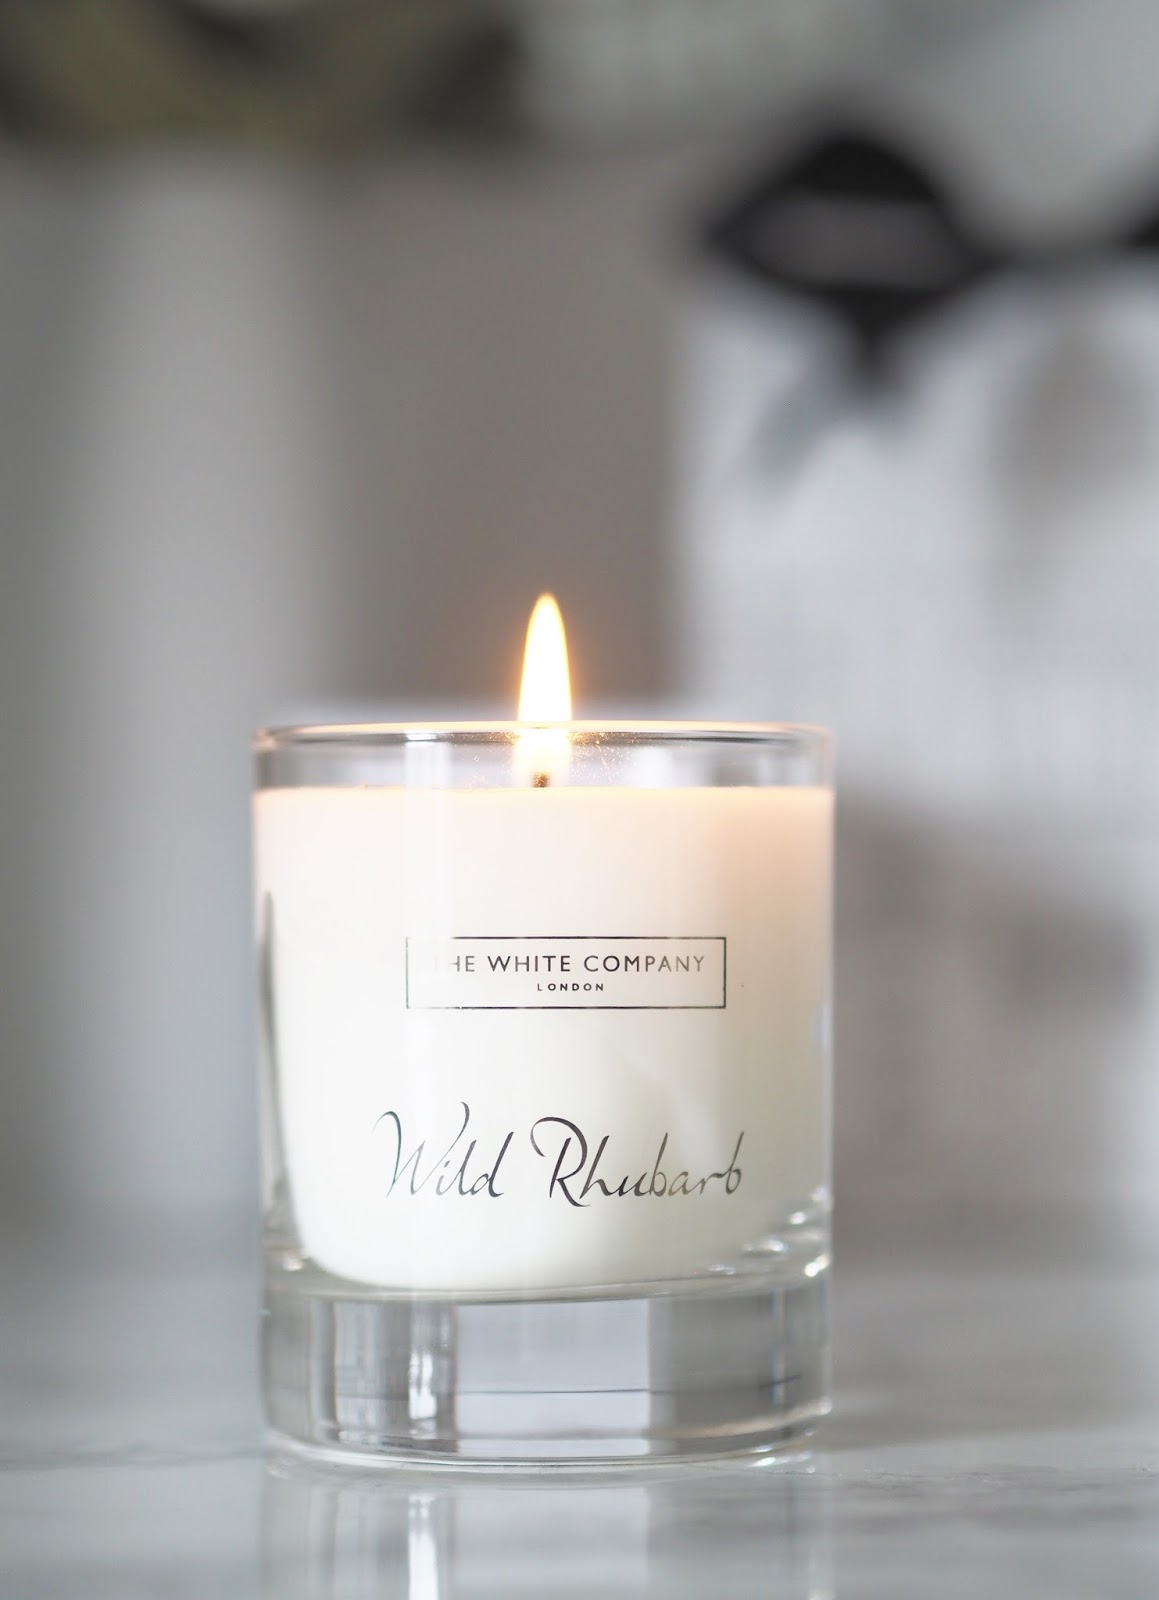 The White Company \ wild rhubarb candle \ review \ home \ home fragrance \ scent \ limited edition \ Priceless Life of Mine \ Over 40 lifestyle blog